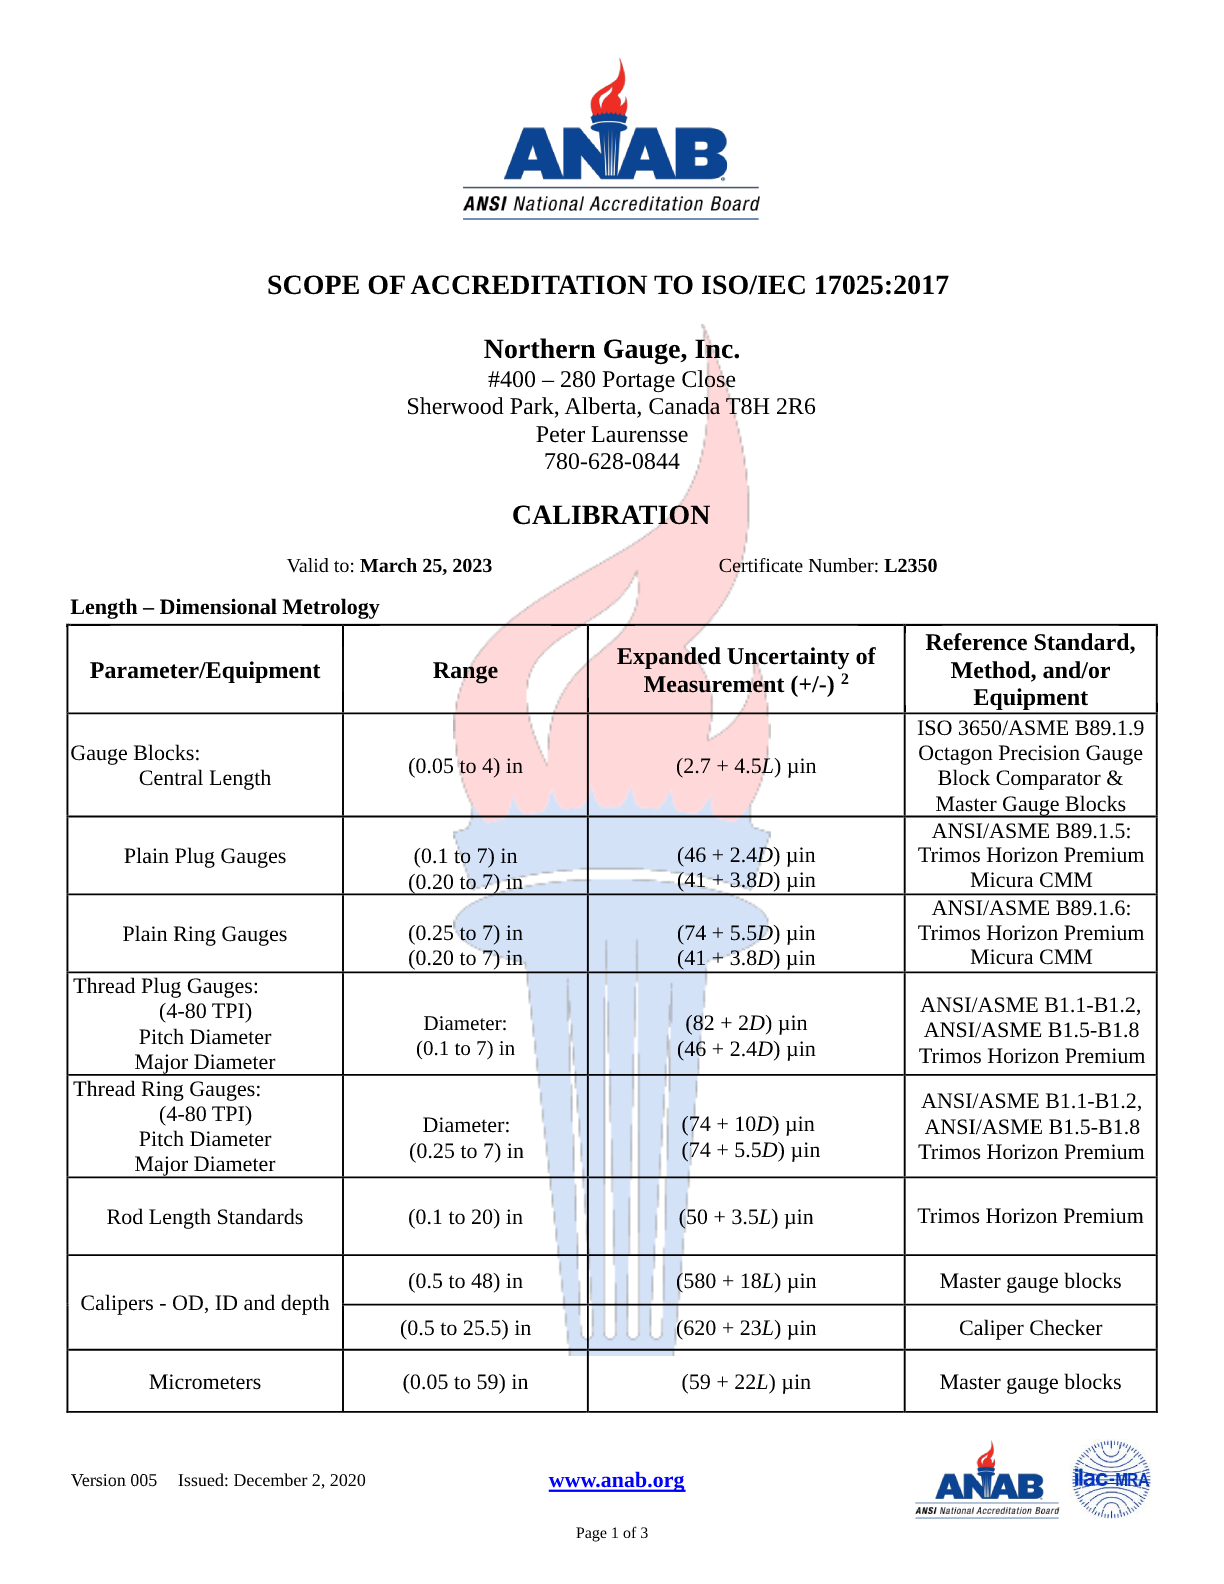 ANAB Certificate of Accreditation page 2